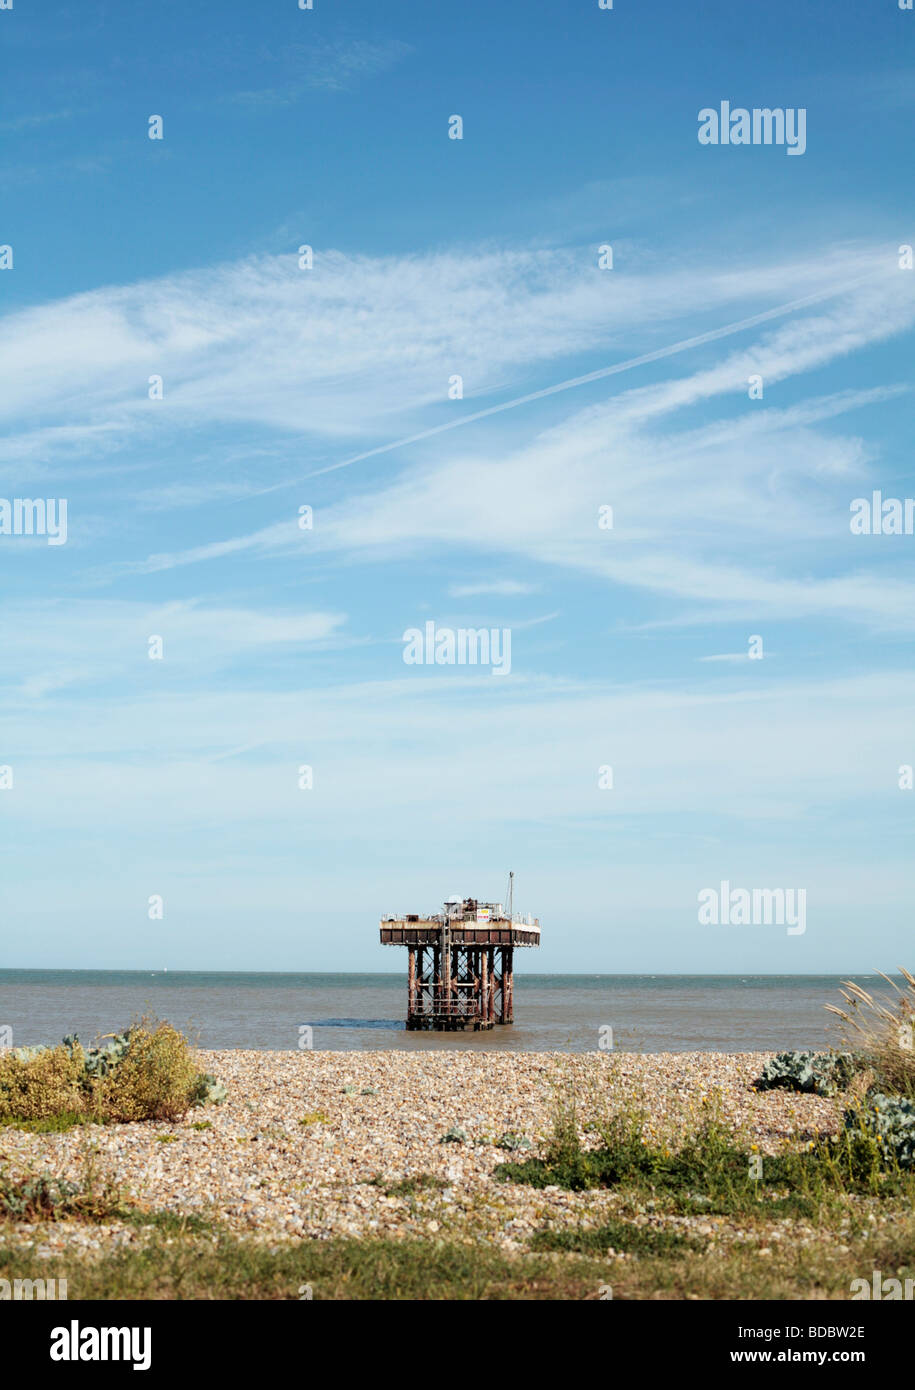 Offshore cooling water inlet / outlet point for Sizewell nuclear power station, Suffolk UK. - Stock Image